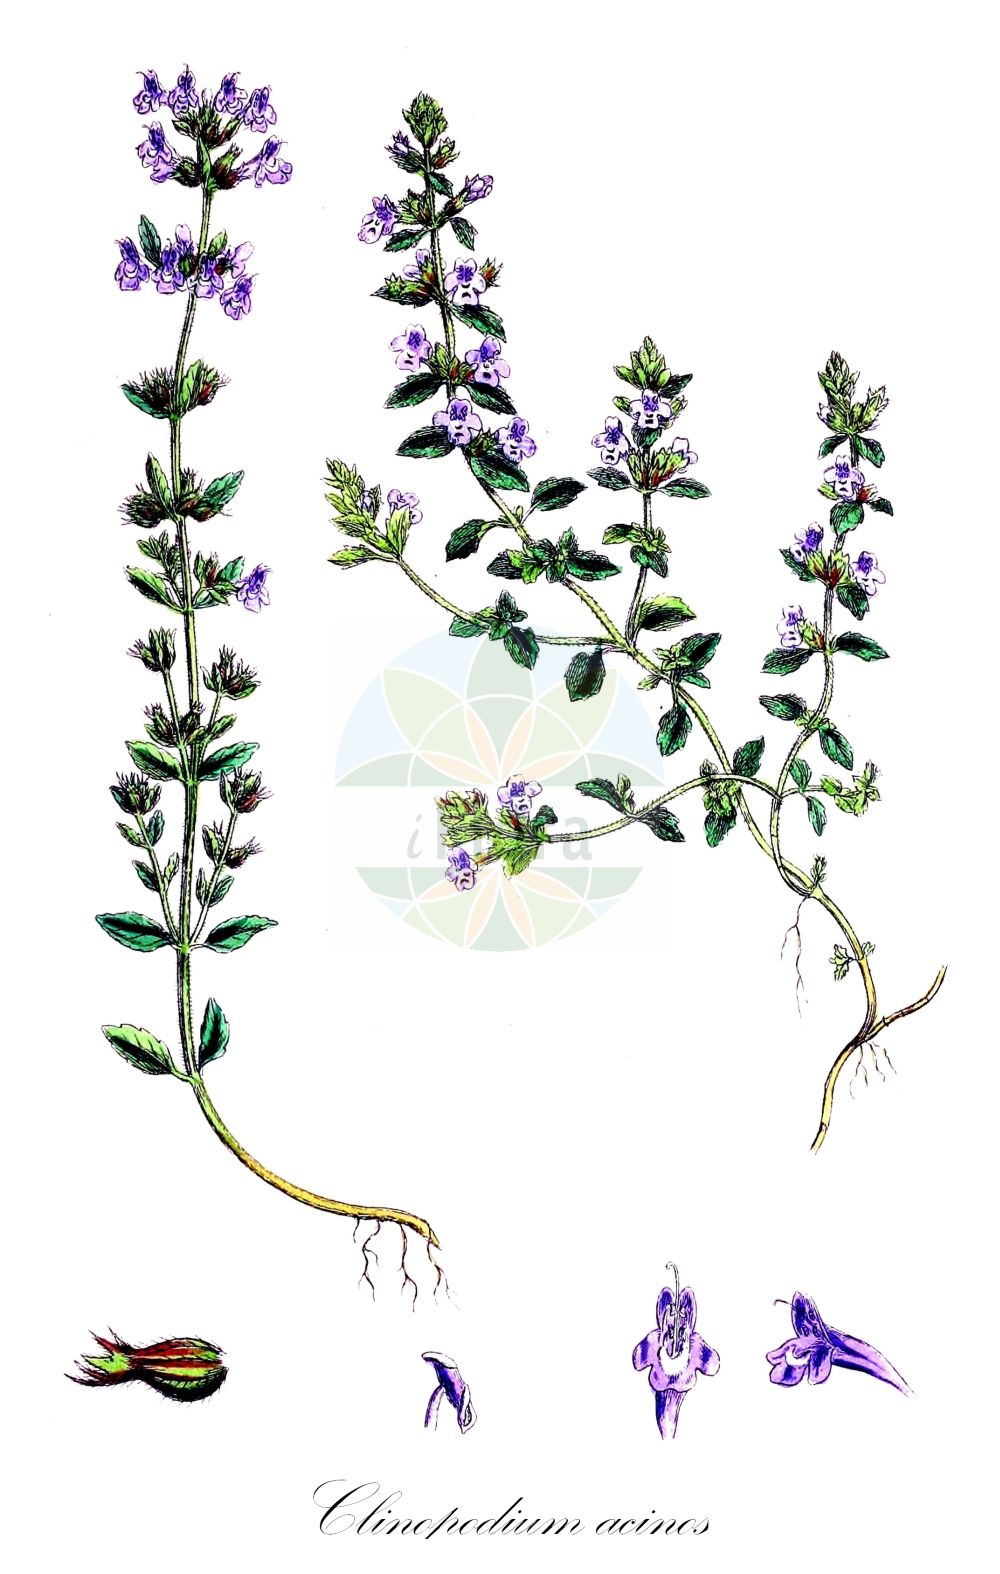 Historische Abbildung von Clinopodium acinos (Feld-Steinquendel - Basil Thyme). Das Bild zeigt Blatt, Bluete, Frucht und Same. ---- Historical Drawing of Clinopodium acinos (Feld-Steinquendel - Basil Thyme).The image is showing leaf, flower, fruit and seed.(Clinopodium acinos,Feld-Steinquendel,Basil Thyme,Acinos acinos,Acinos acuminatus,Acinos arvensis,Acinos clinopodiifacie,Acinos eglandulosus,Acinos inflectus,Acinos schizodontus,Acinos subcrispus,Acinos thymoides,Acinos villosus,Calamintha acinos,Calamintha heterophylla,Calamintha villosa,Faucibarba acinos,Melissa acinos,Melissa arvensis,Satureja acinos,Thymus acinos,Thymus arvensis,Thymus canescens,Thymus concinnus,Thymus gibbosus,Gewoehnlicher Steinquendel,Stein-Bergminze,Mother-of-Thyme,Clinopodium,Wirbeldost,Calamint,Lamiaceae,Lippenbluetengewaechse;Lippenbluetler,Nettle family,Blatt,Bluete,Frucht,Same,leaf,flower,fruit,seed,Sowerby (1790-1813))